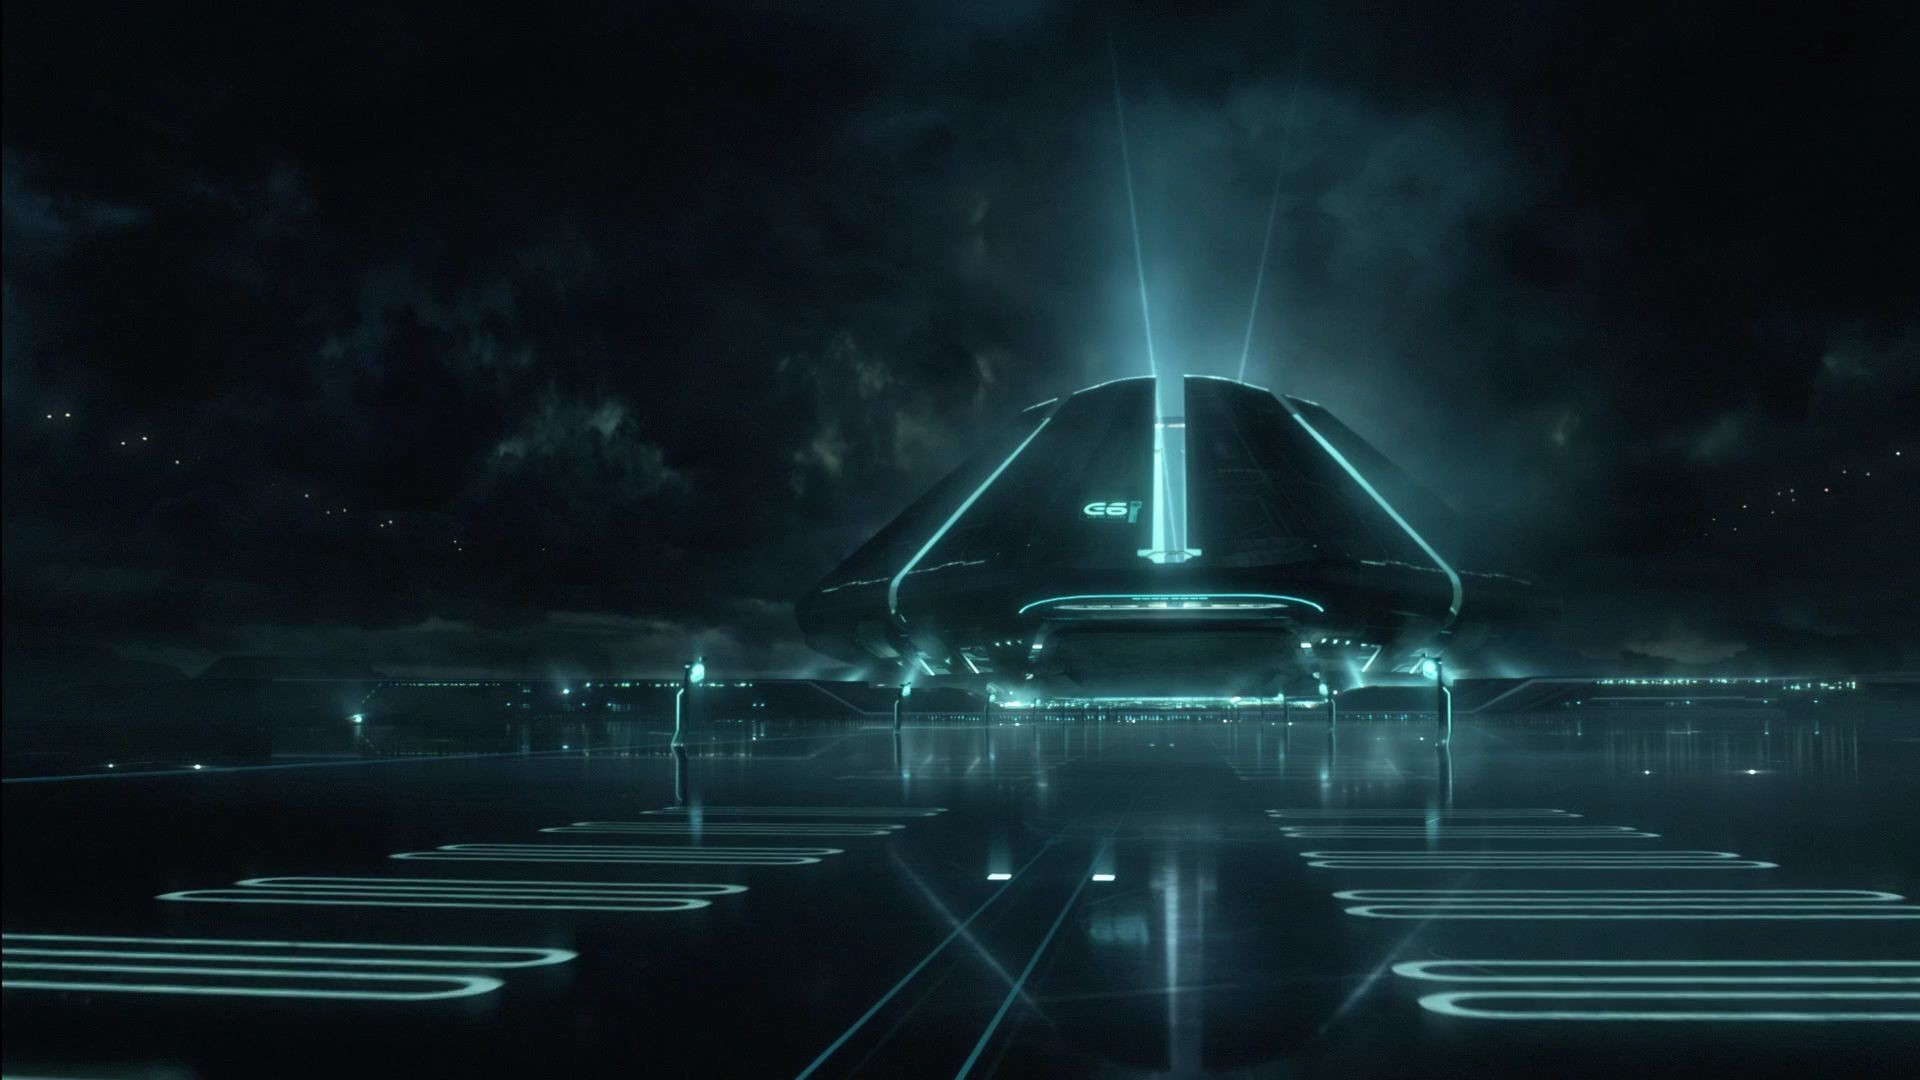 tron legacy backgrounds (75+ images)